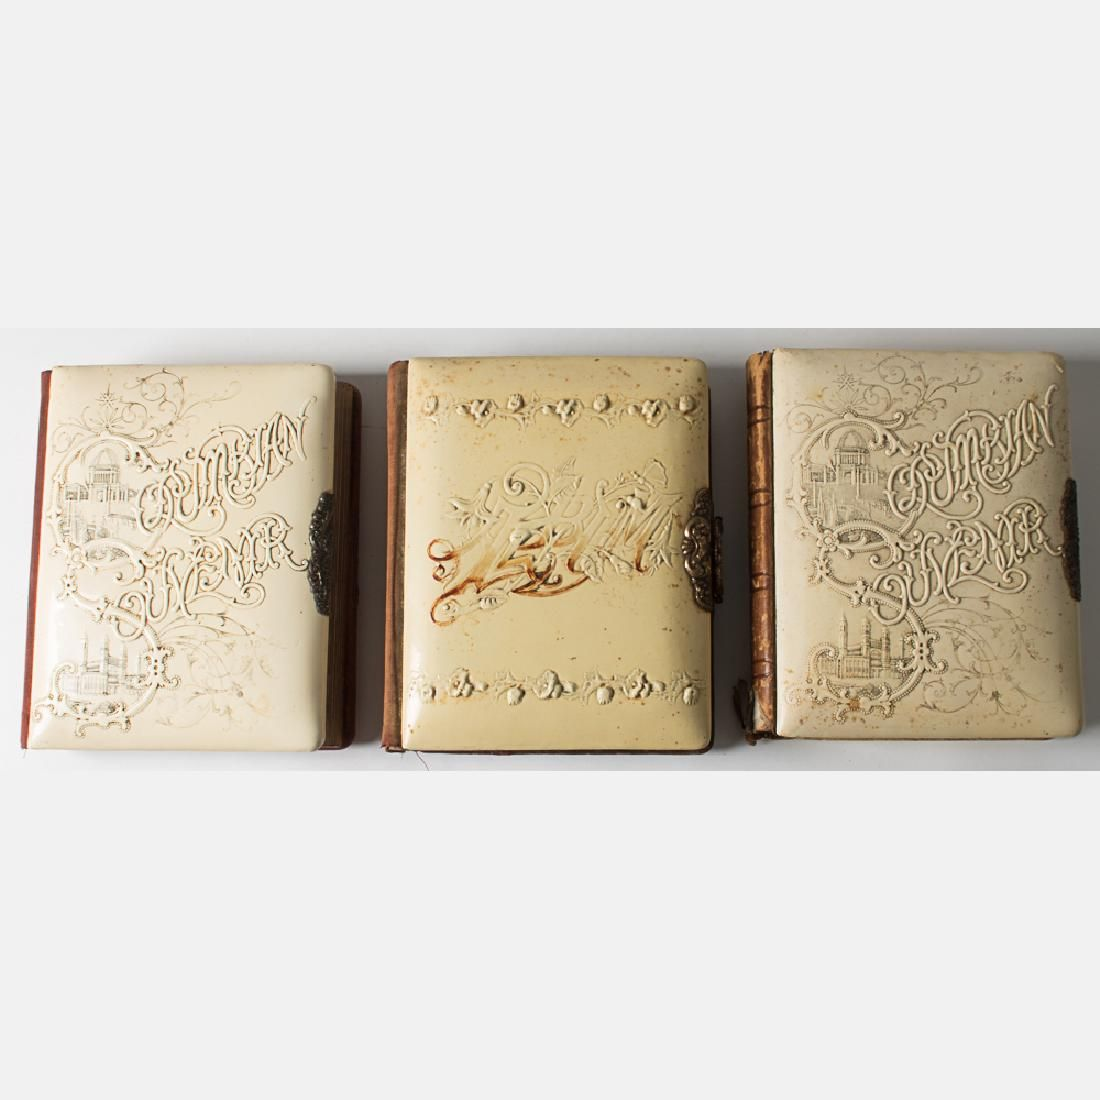 A Group of Three Souvenir Photo Albums from the World's